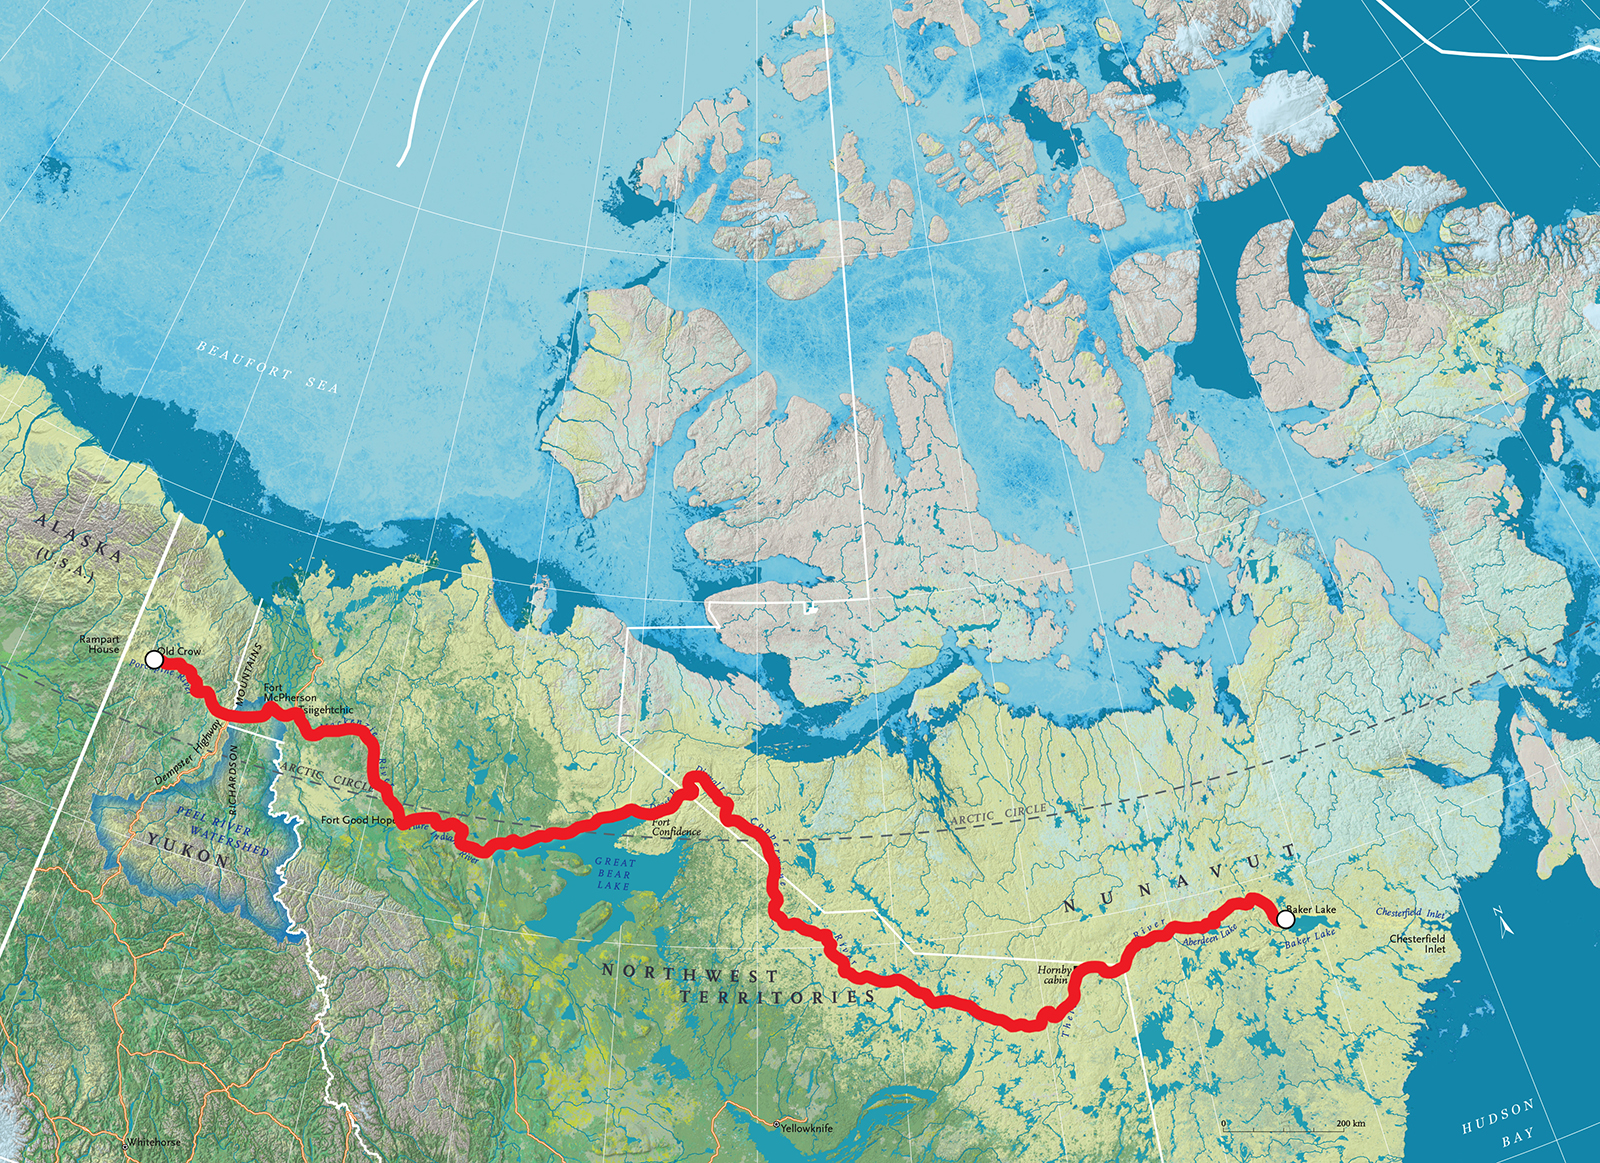 Exclusive: Adam Shoalts on his epic Trans-Canadian Arctic Expedition